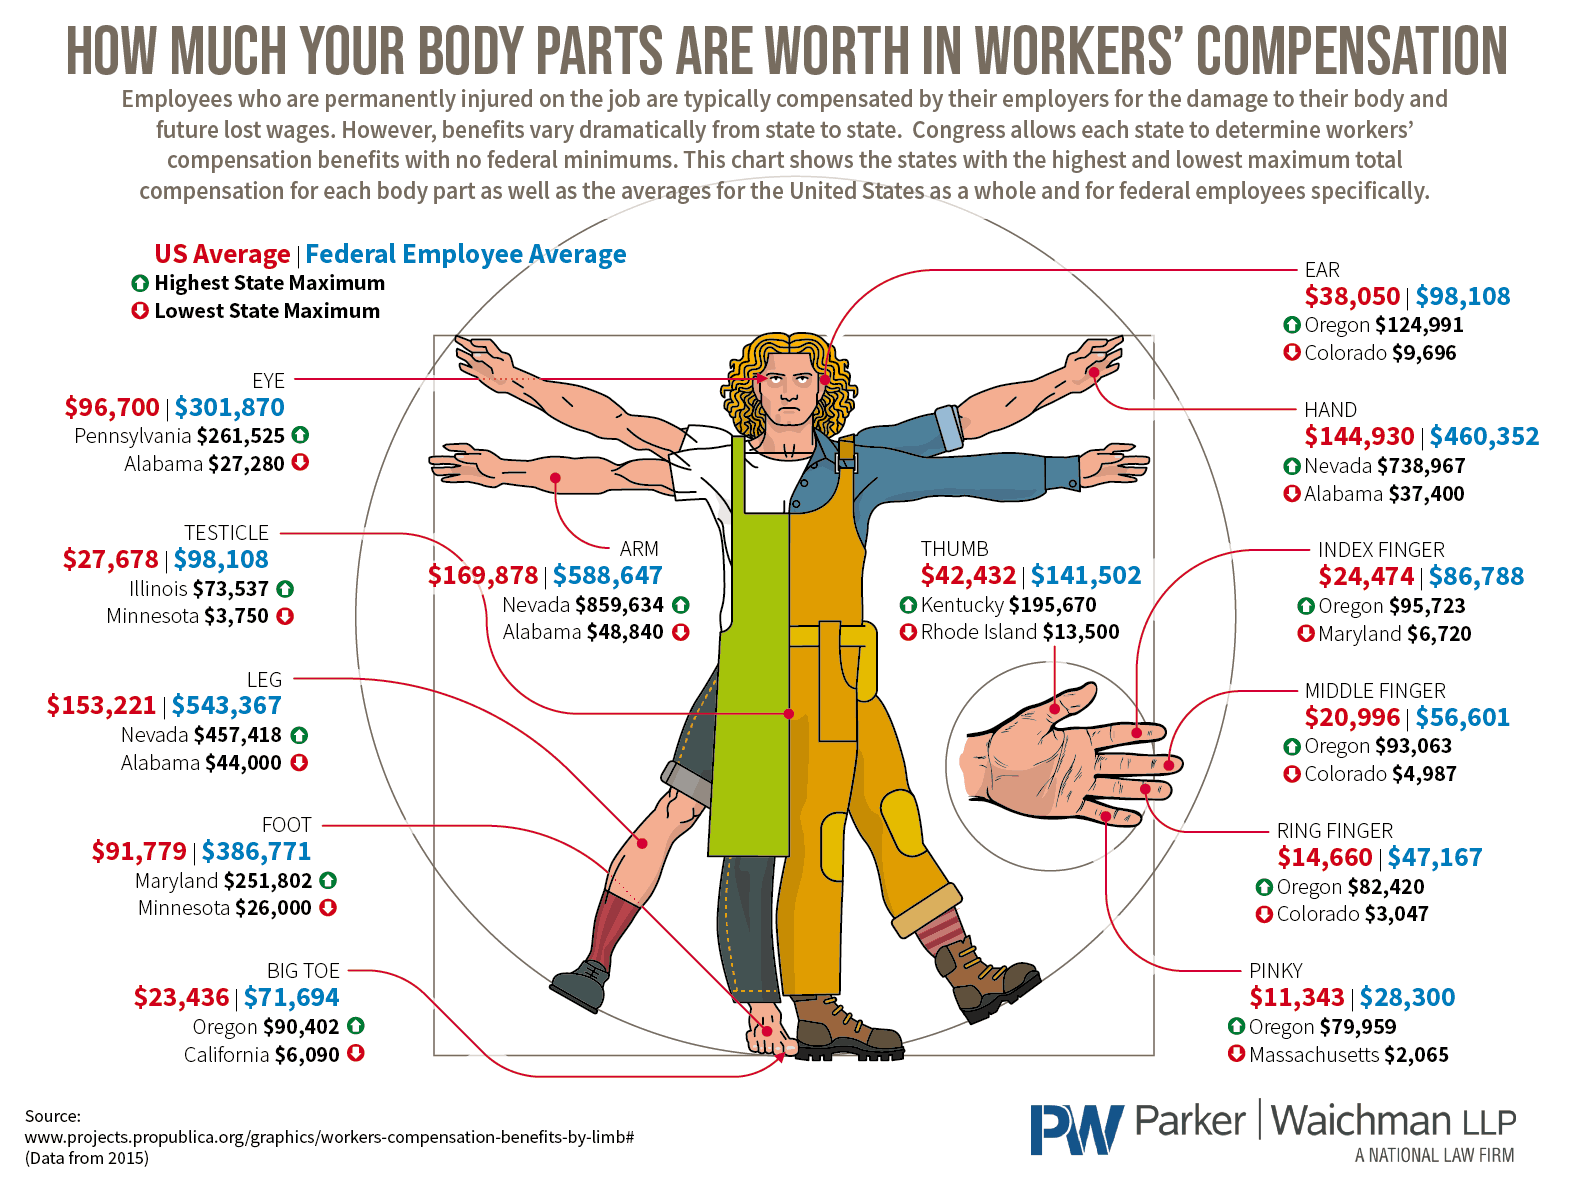 How Much Your Body Parts Are Worth In Workers' Compensation